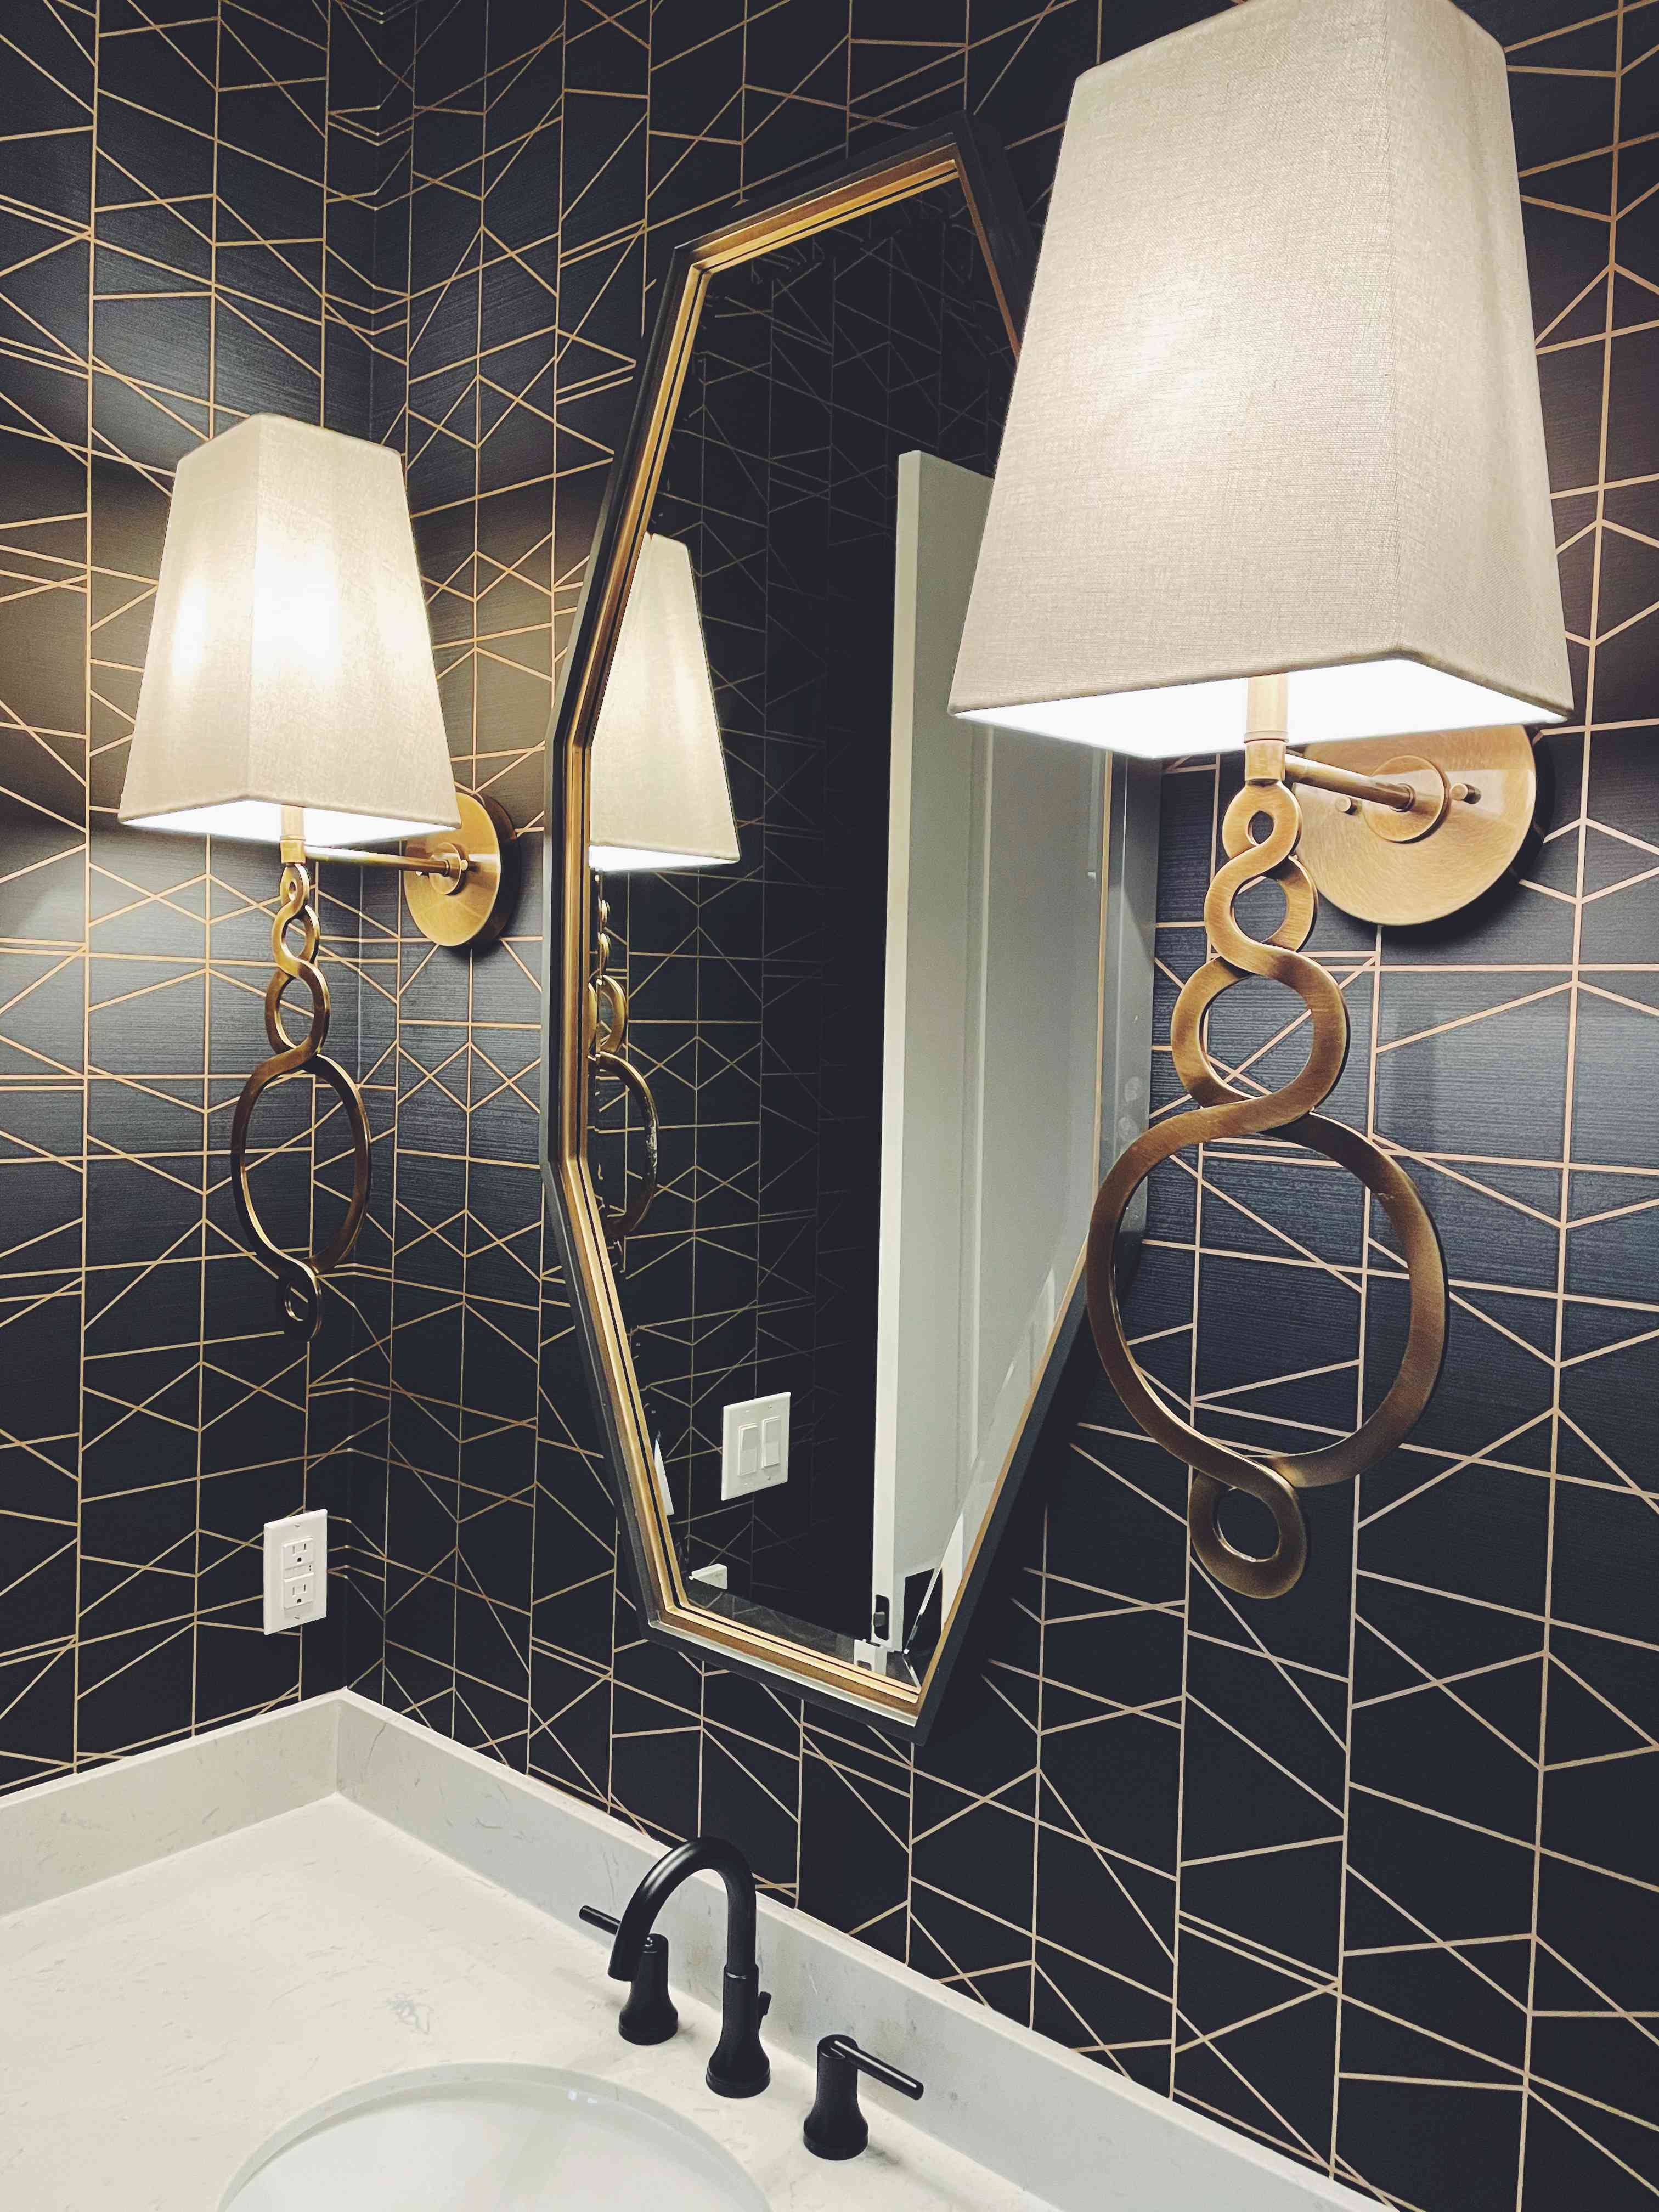 Bathroom with luxurious wall sconces.